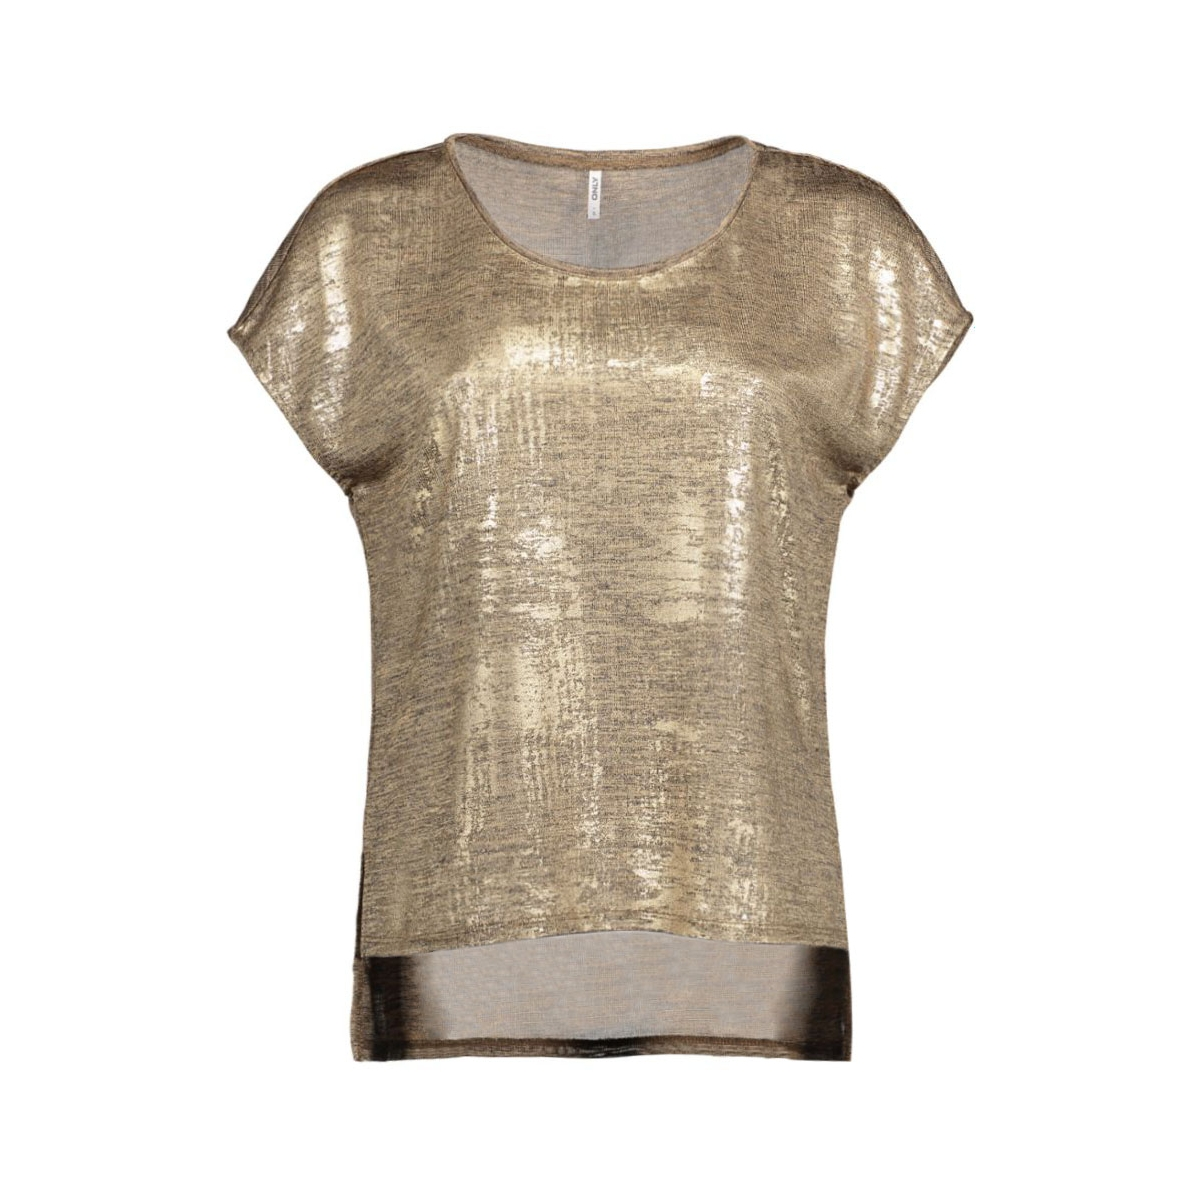 onlplearl s/s top jrs 15125872 only t-shirt gold colour